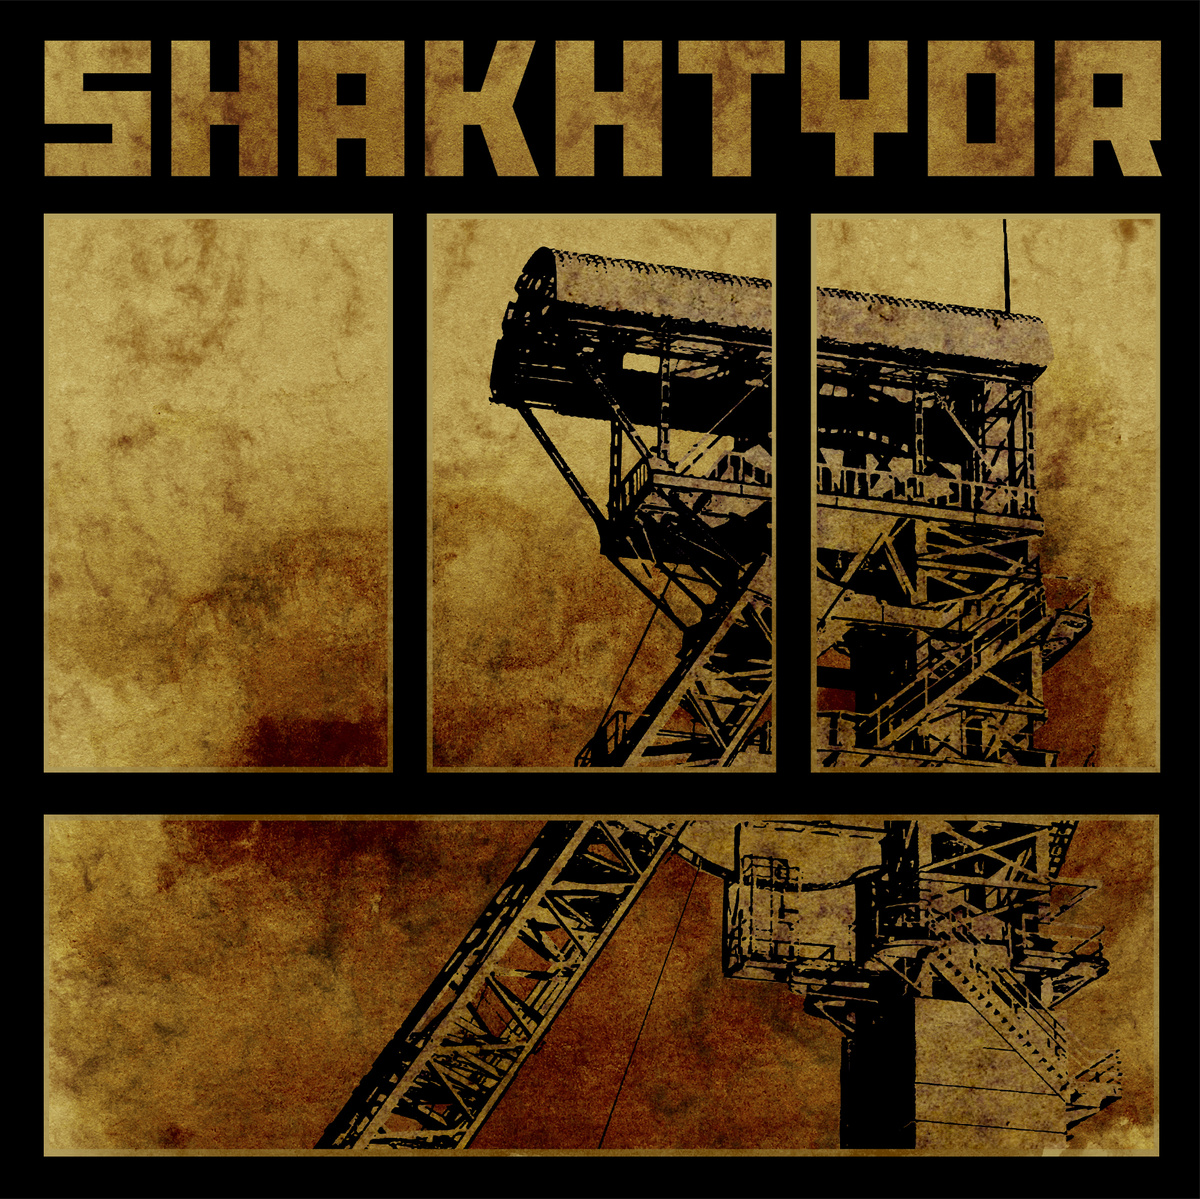 Shakhtyor - Shakhtyor Review